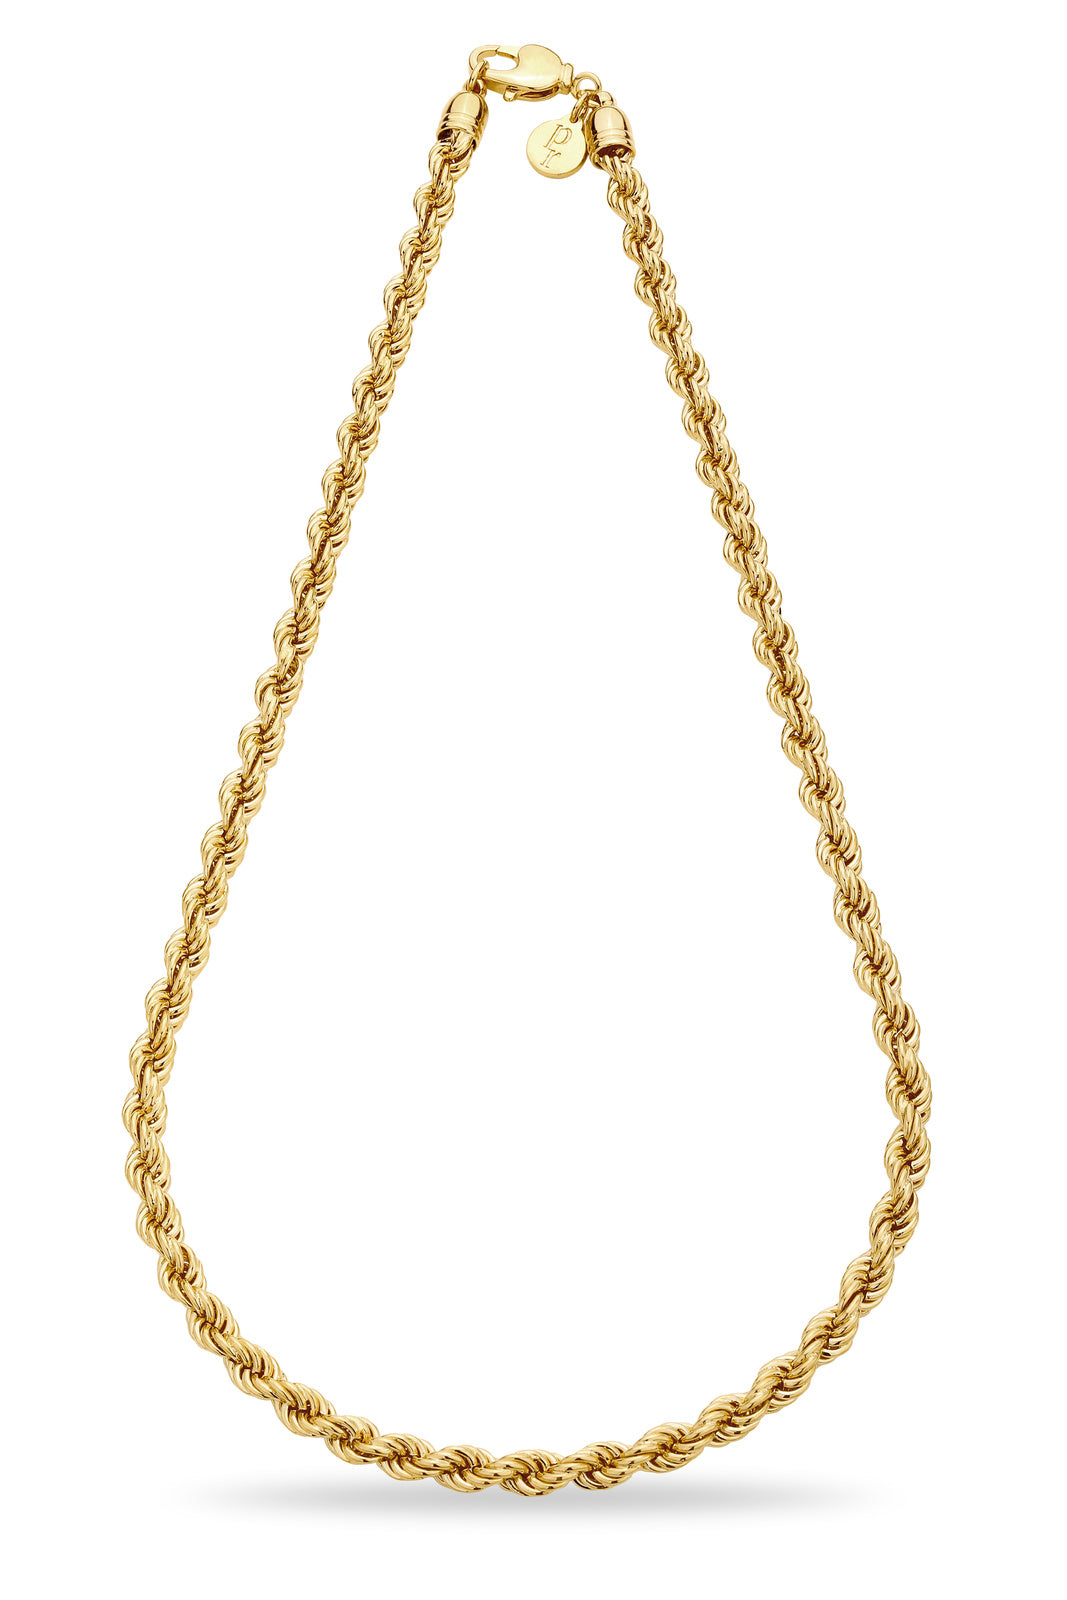 PATTY ROSE CHAIN No.3 NECKLACE